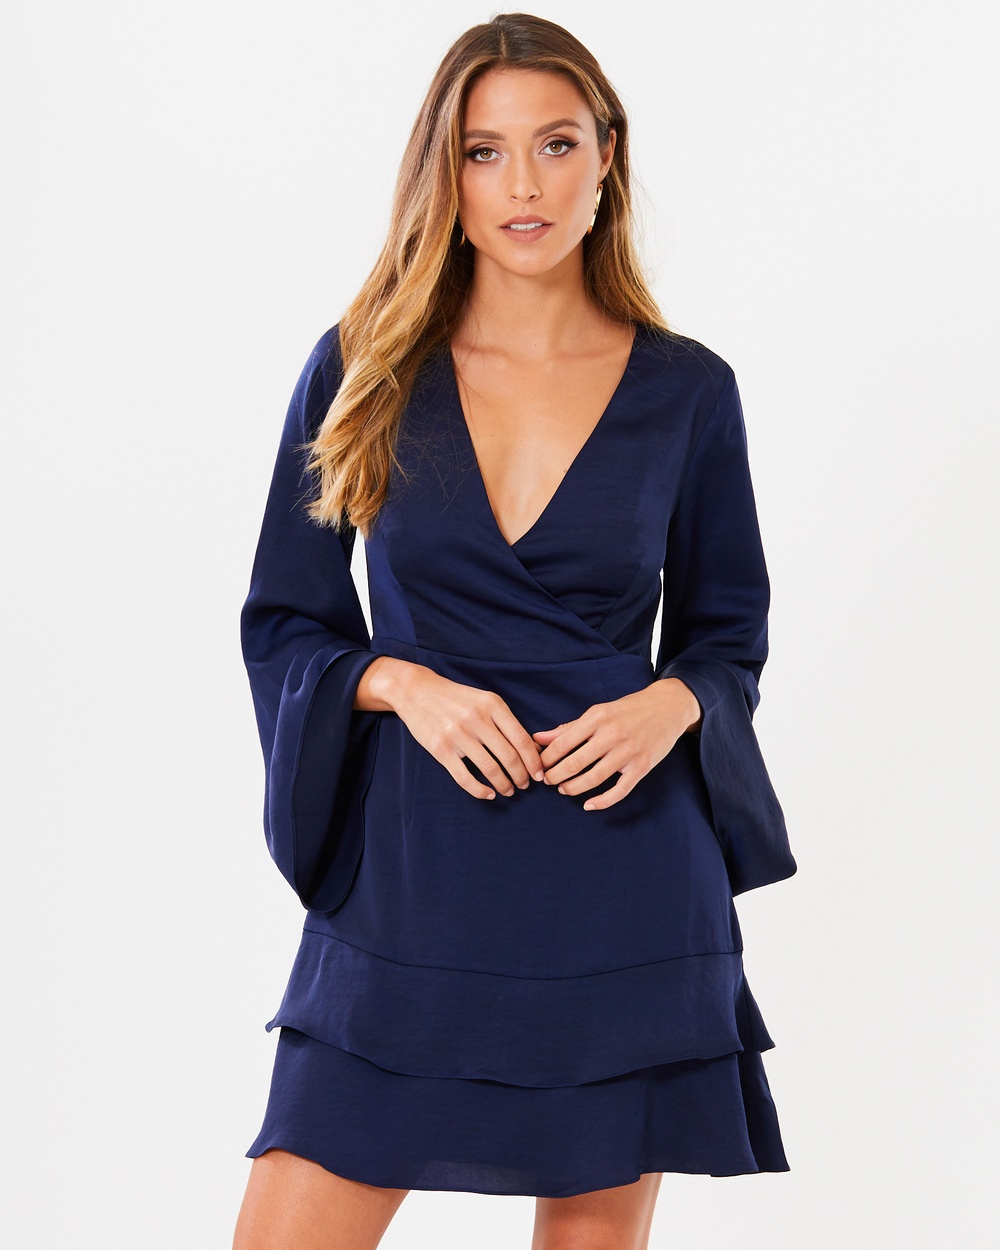 Calli Kimbra Dress Dresses Navy Kimbra Dress